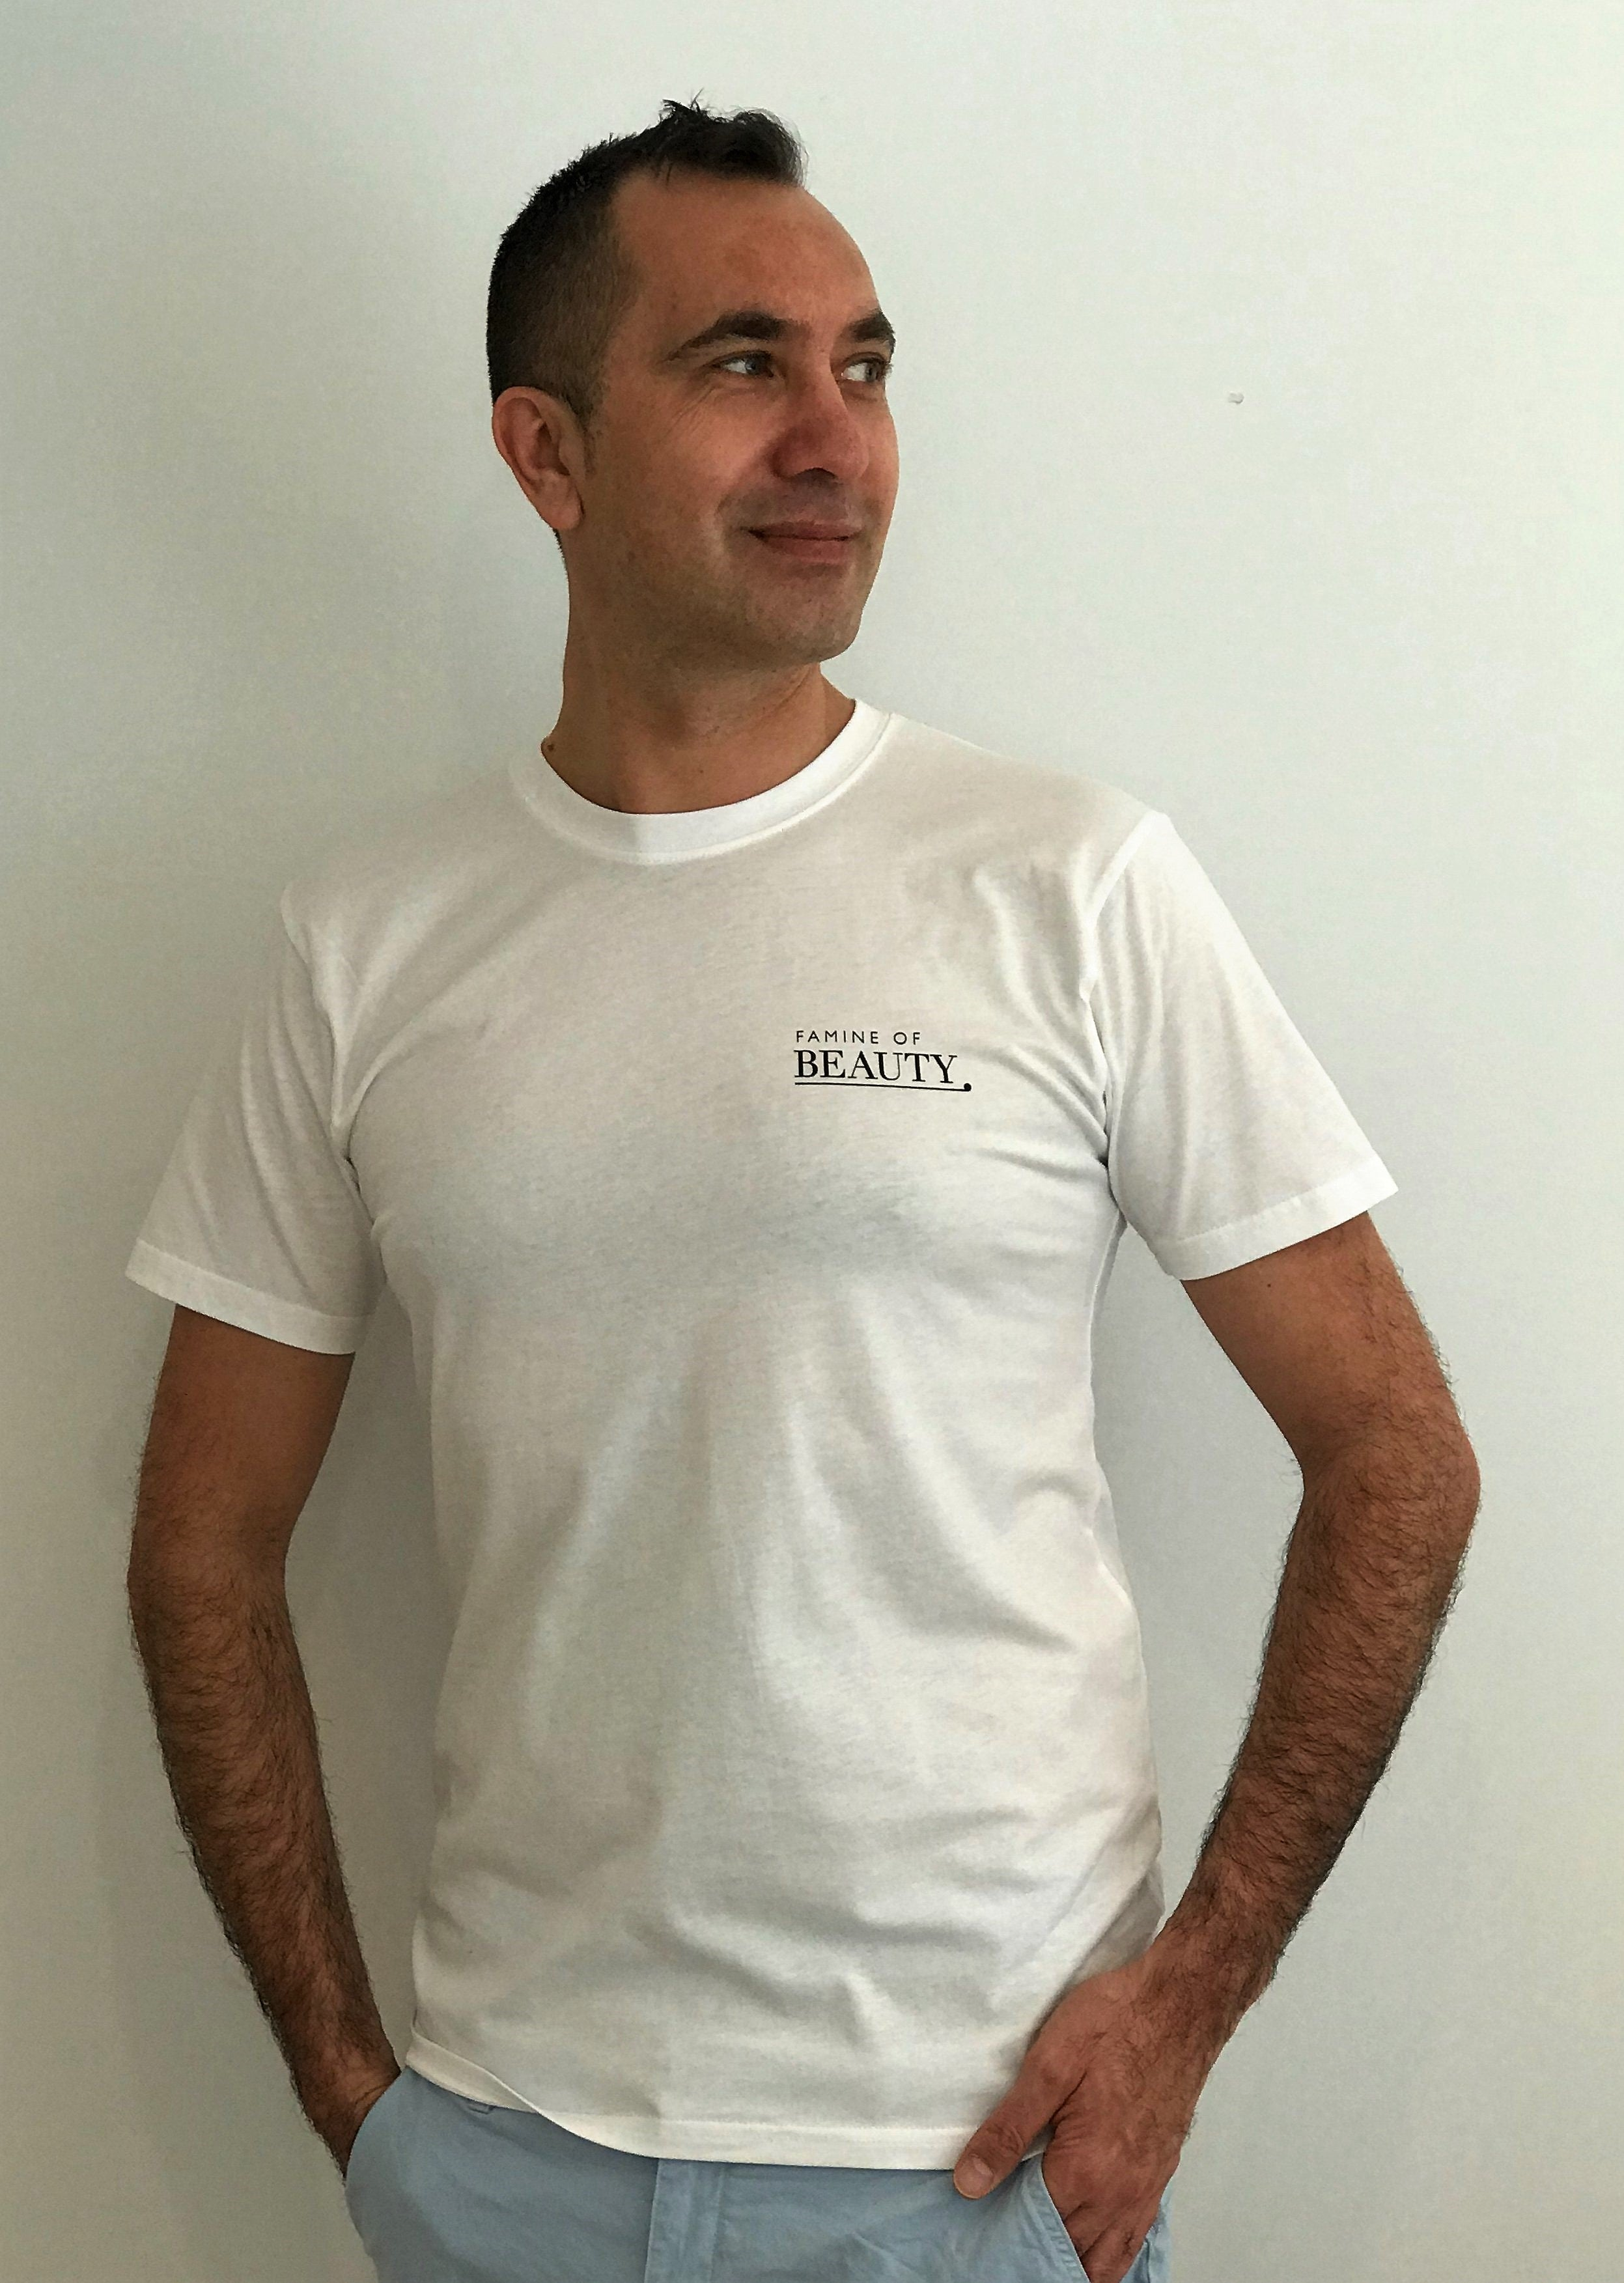 The Branded Beauty T-Shirt